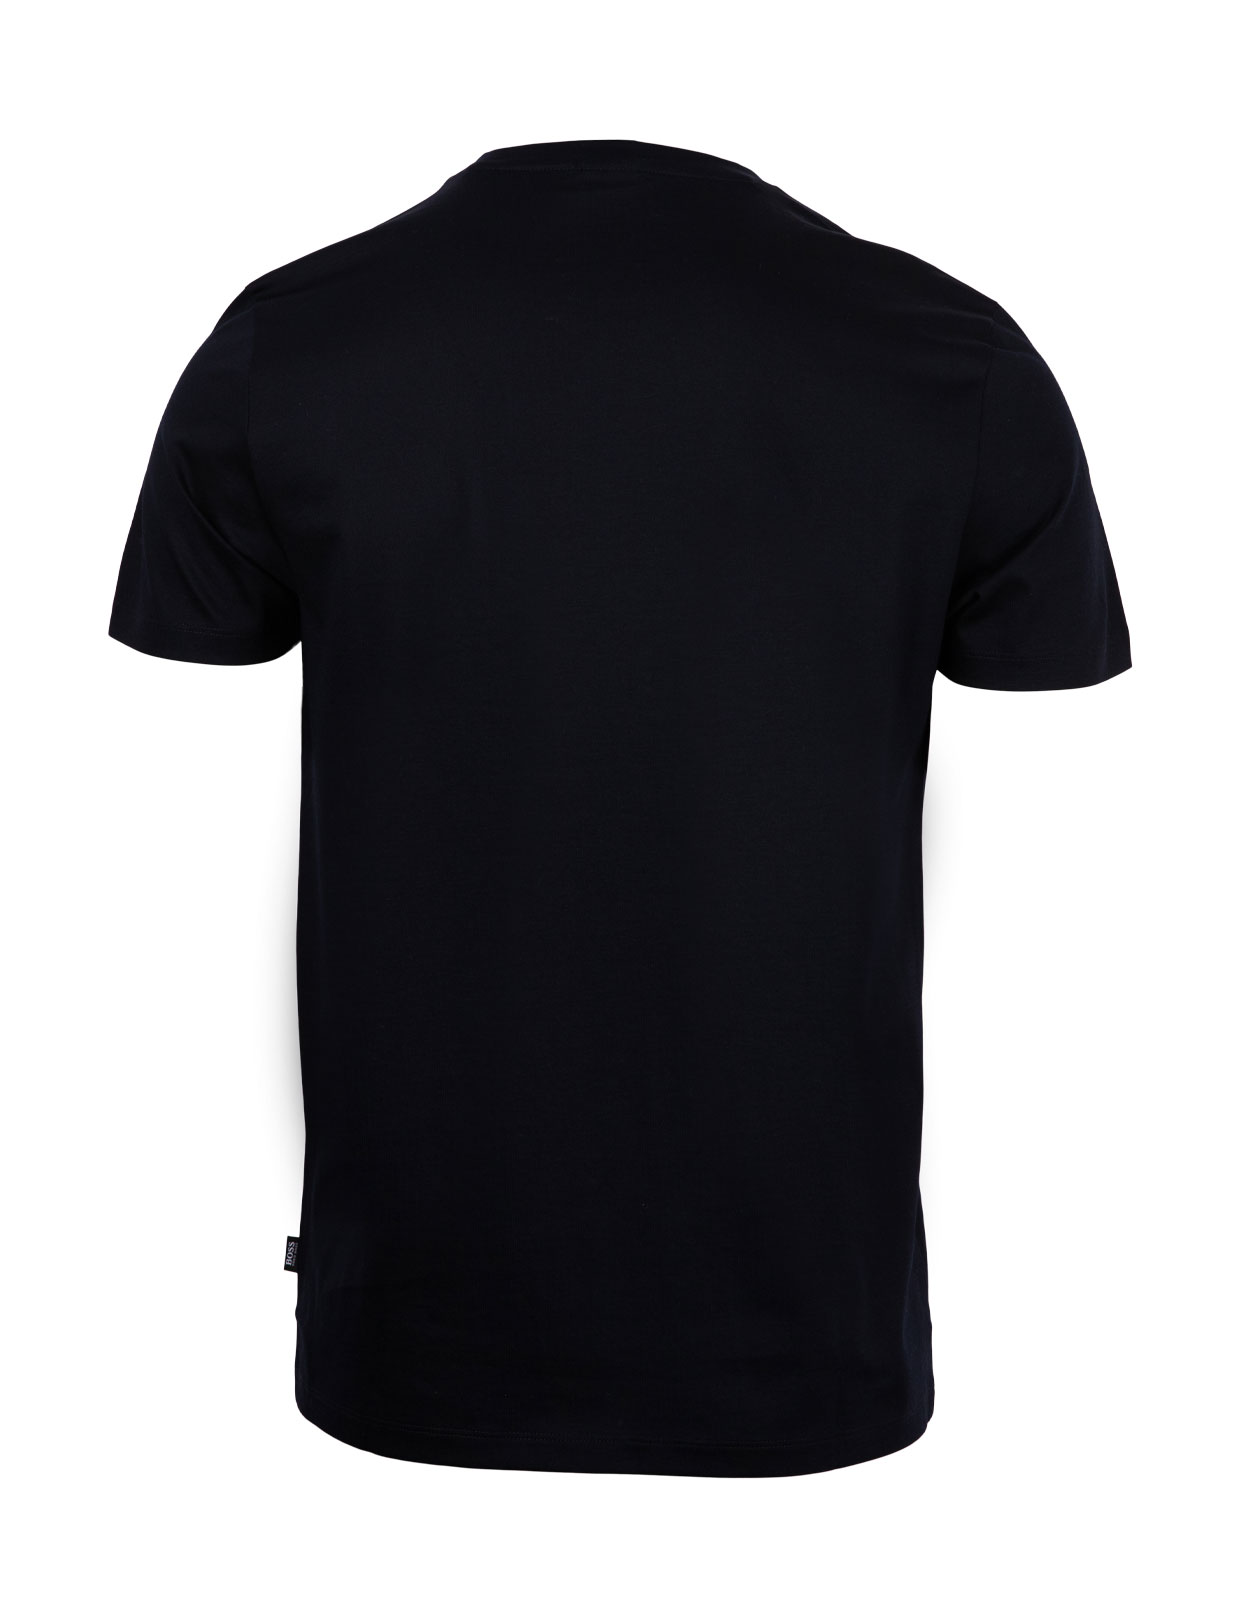 Tessler T-shirt Cotton Dark Blue